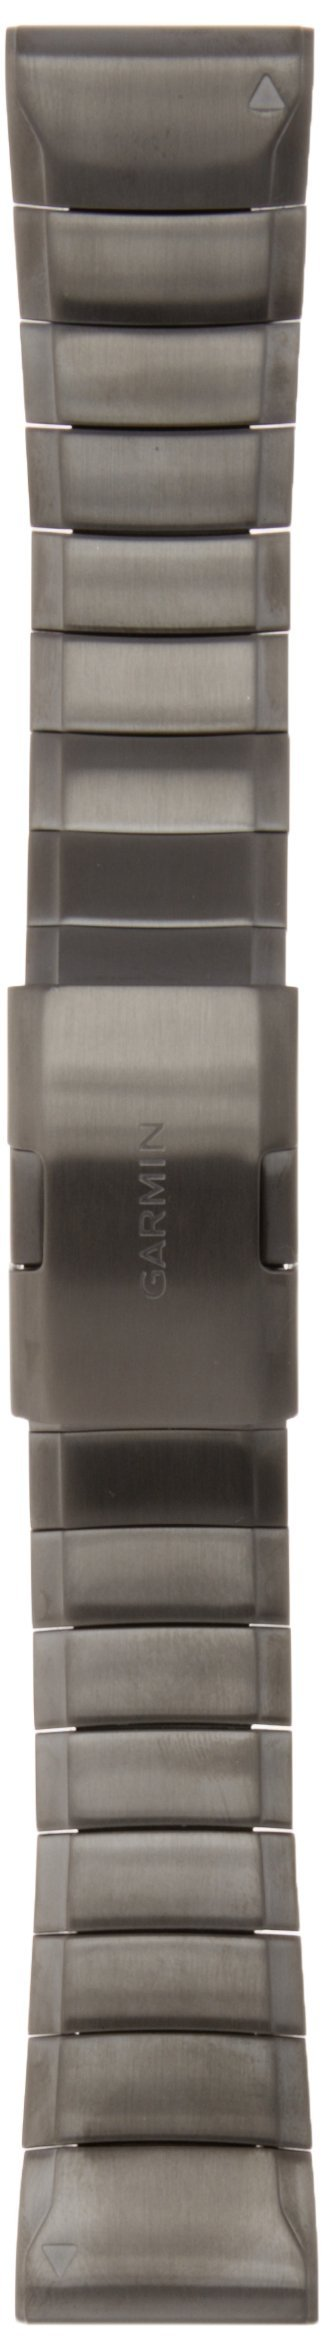 Garmin 010-12496-06 Fenix 5 Quick fit 22 Watch Band - Slate Grey Stainless Steel